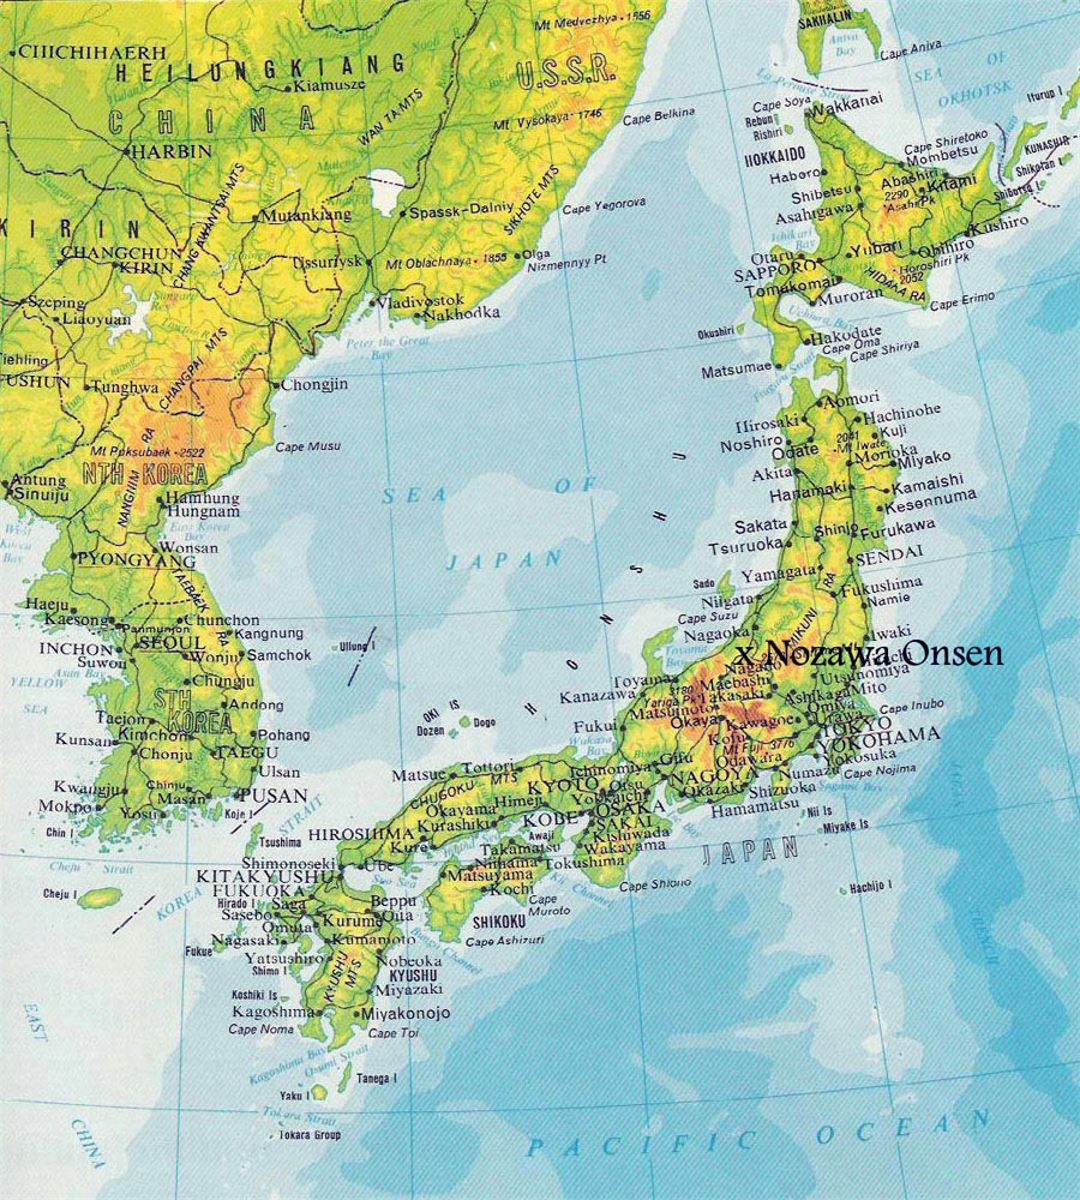 Elevation Map Of Japan With Roads And Cities Japan Asia - Japan map of cities